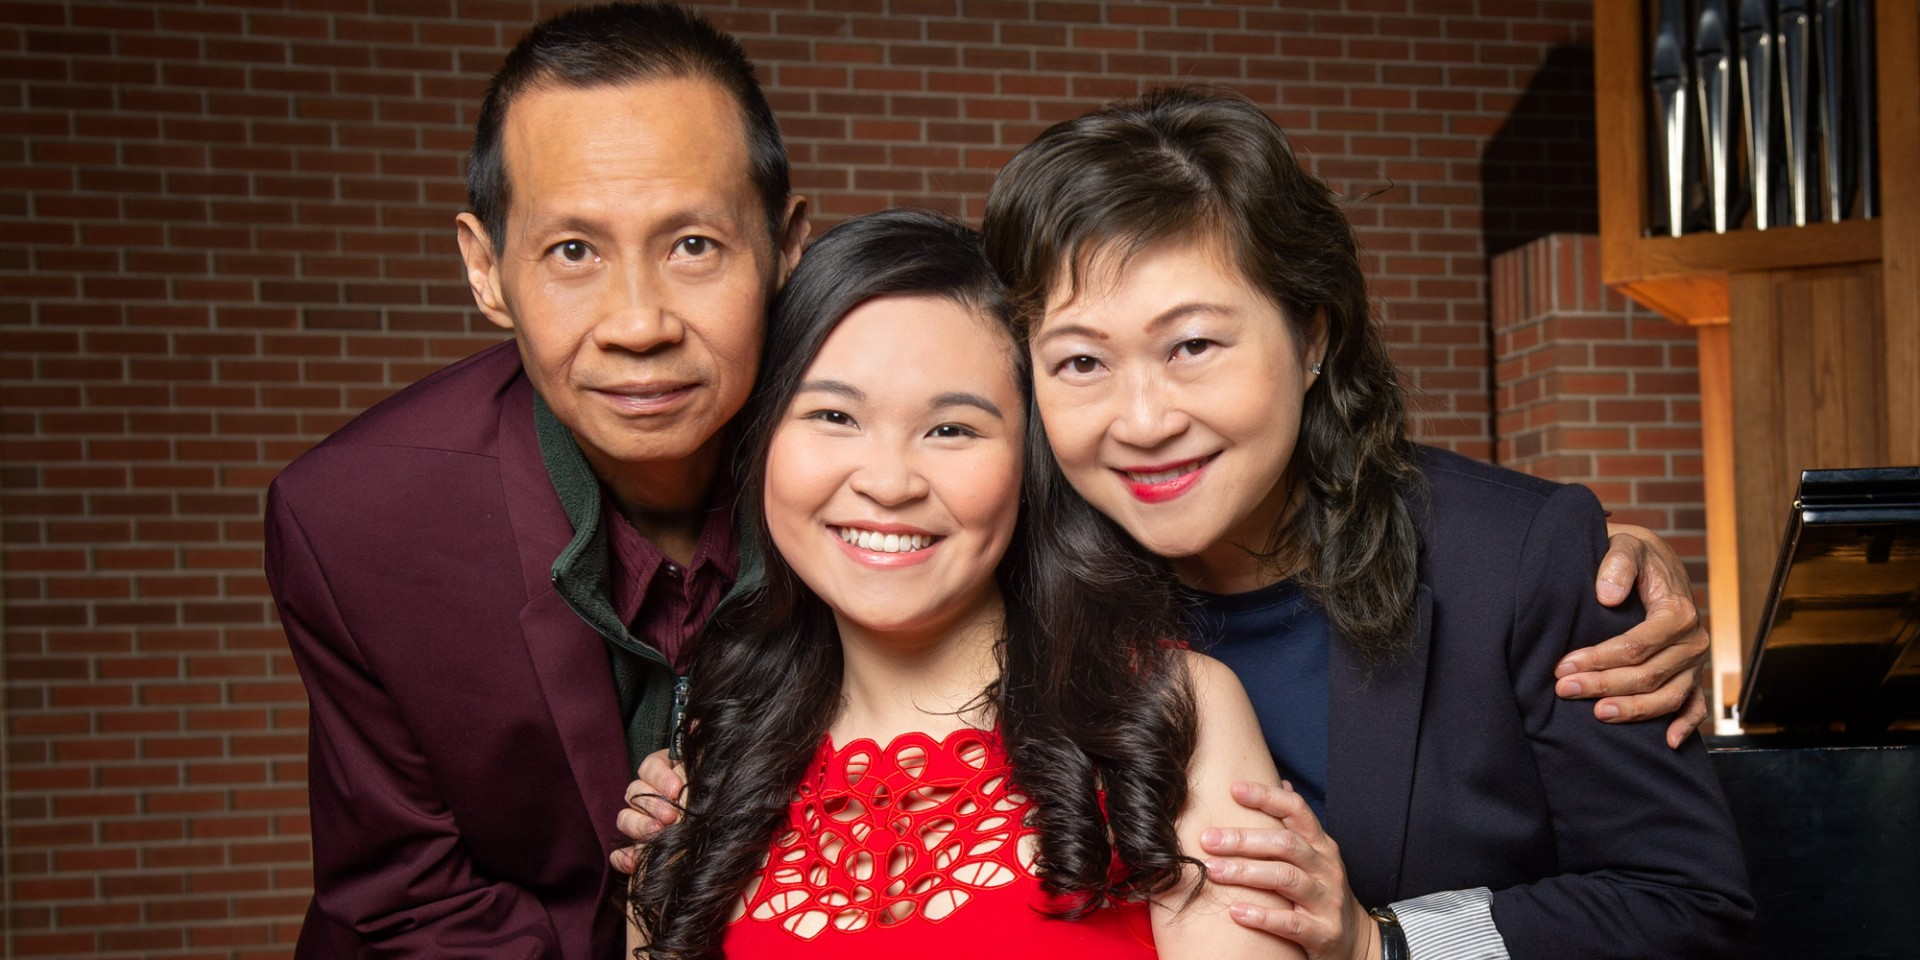 A family legacy will come full circle when Hilda Lam graduates June 3 with a bachelor's degree in vocal performance. (Photo: Richard Siemens)